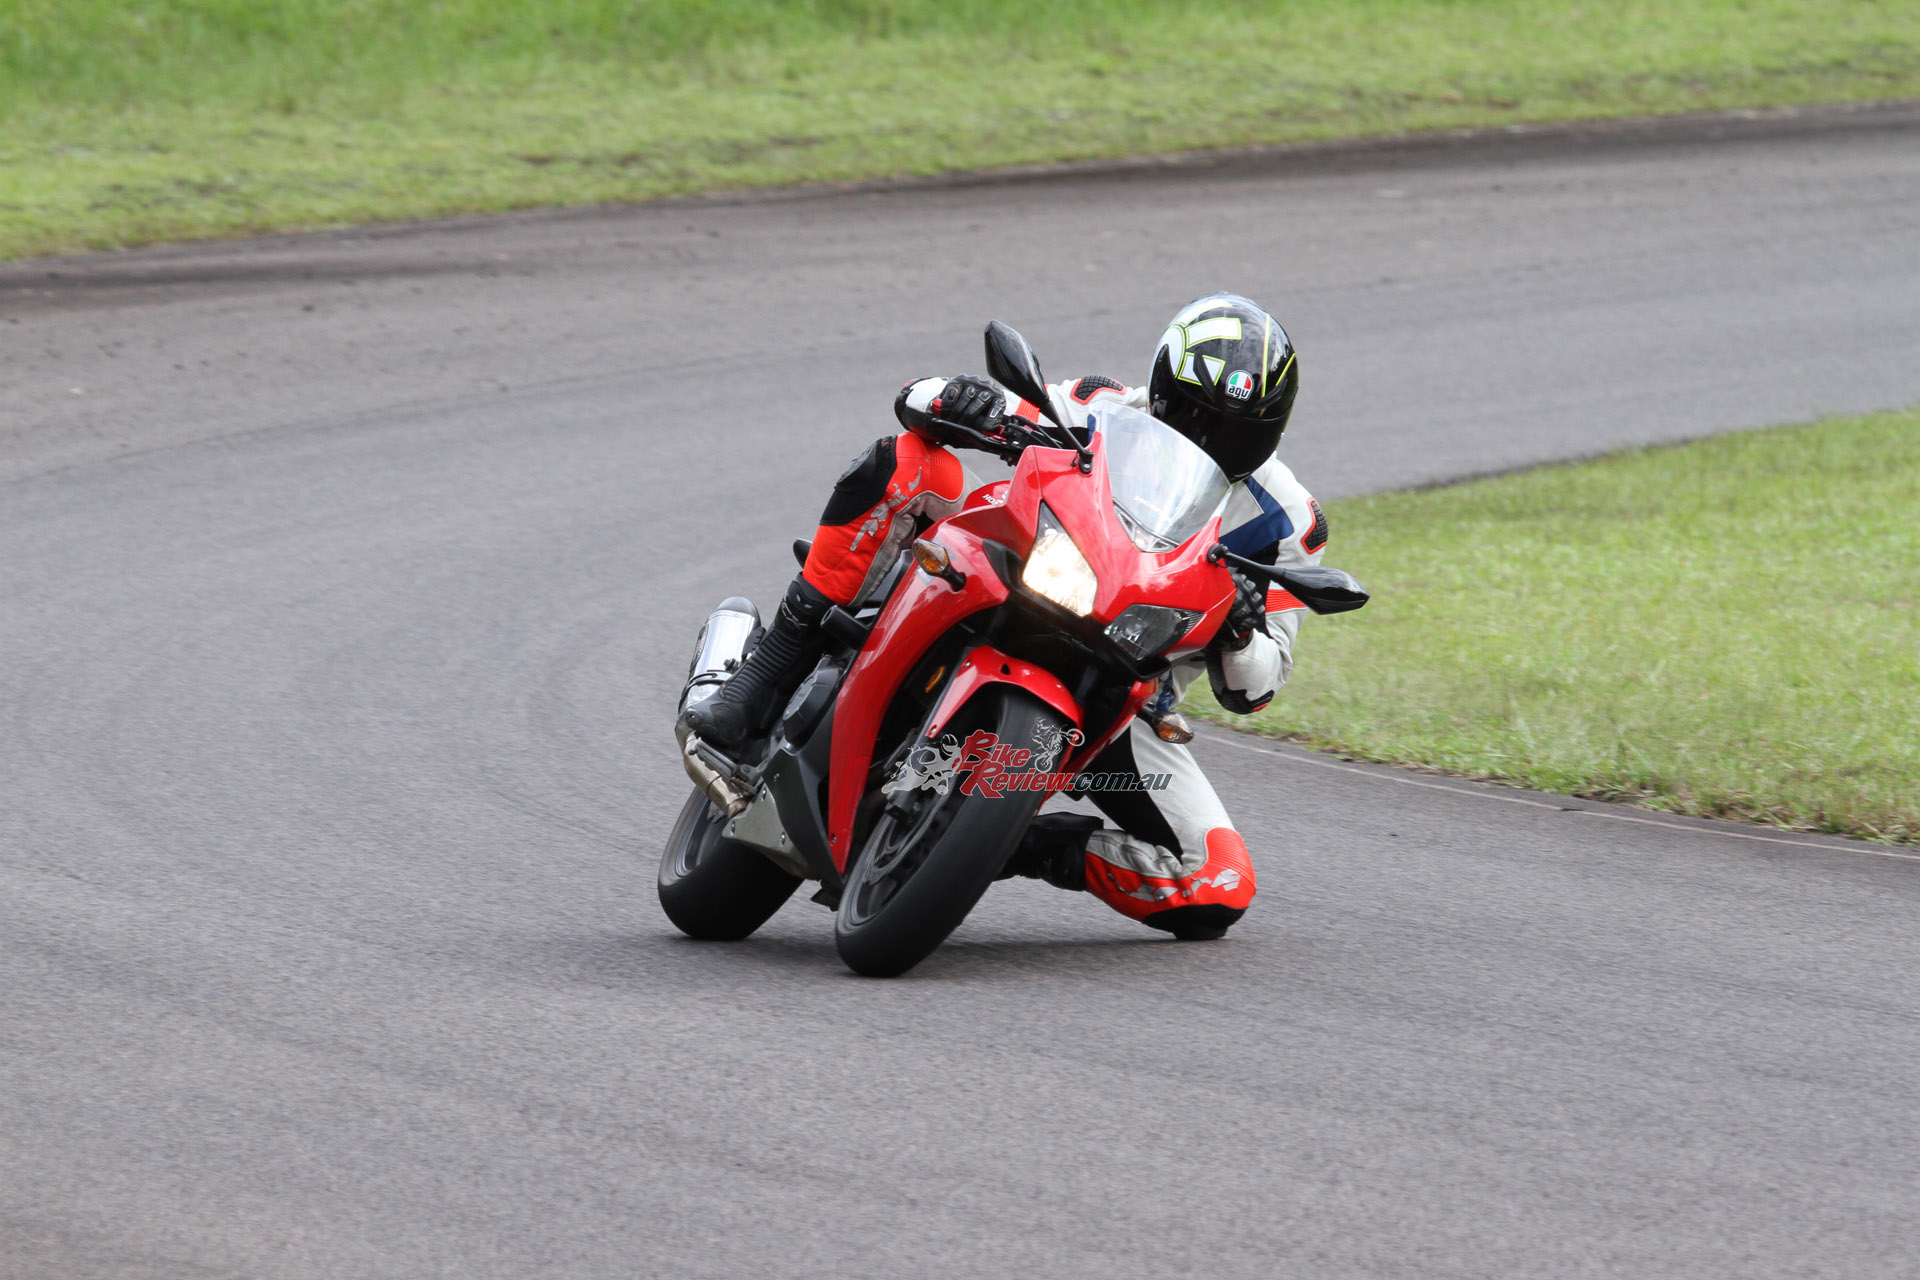 Nick trying his best to crash test the CBR500R Oggy Knobbs!